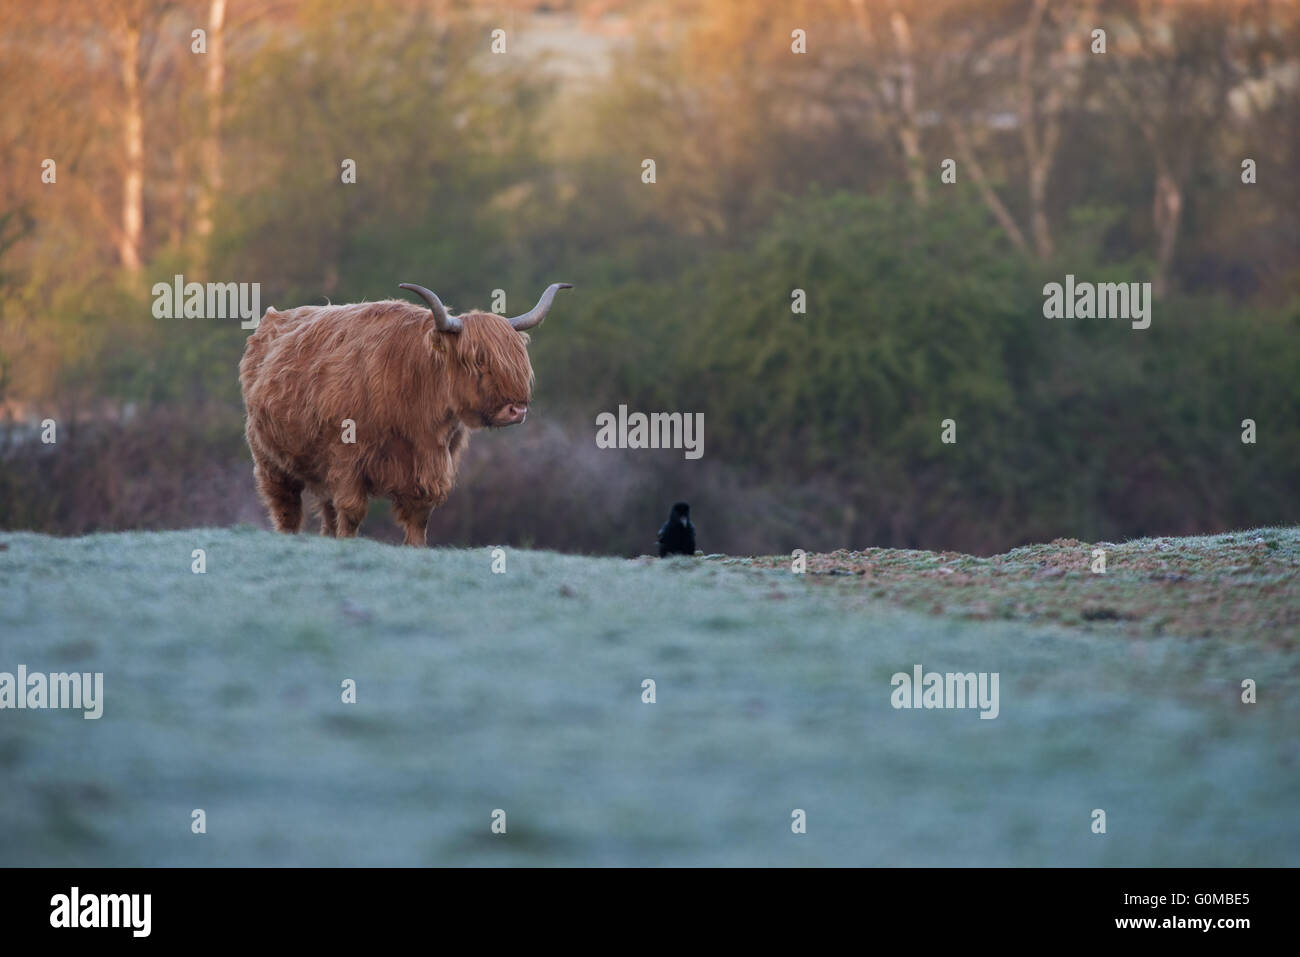 Highland Catlle-Bos Taurus looks upon a Carrion Crow- Corvus Corone on a frosty morning at  sunrise. Spring. Uk - Stock Image